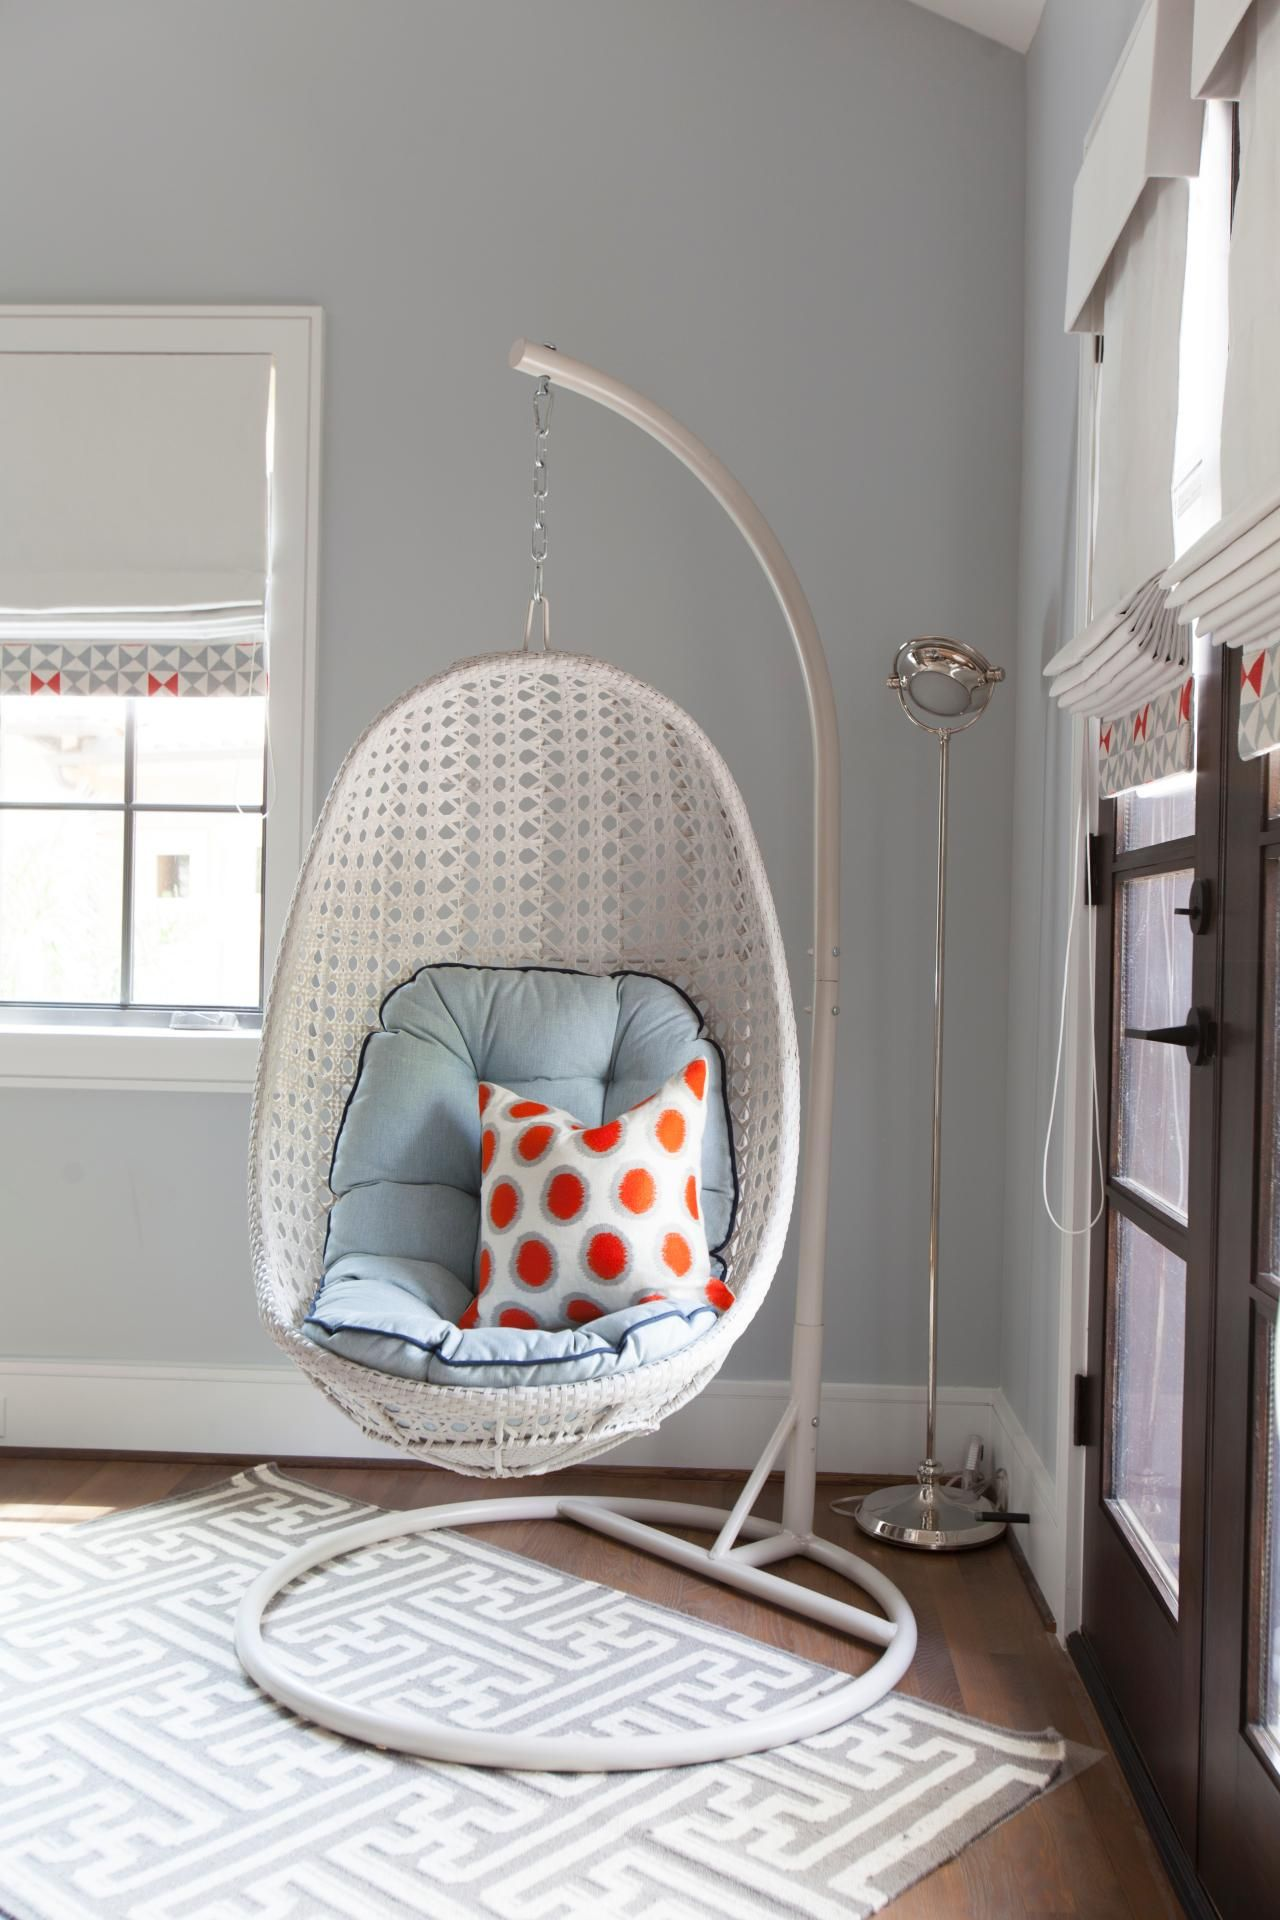 Hanging Chairs In Bedrooms Hanging Chairs In Kids Rooms Swing Chair For Bedroom Swing Chair Bedroom Bedroom Swing